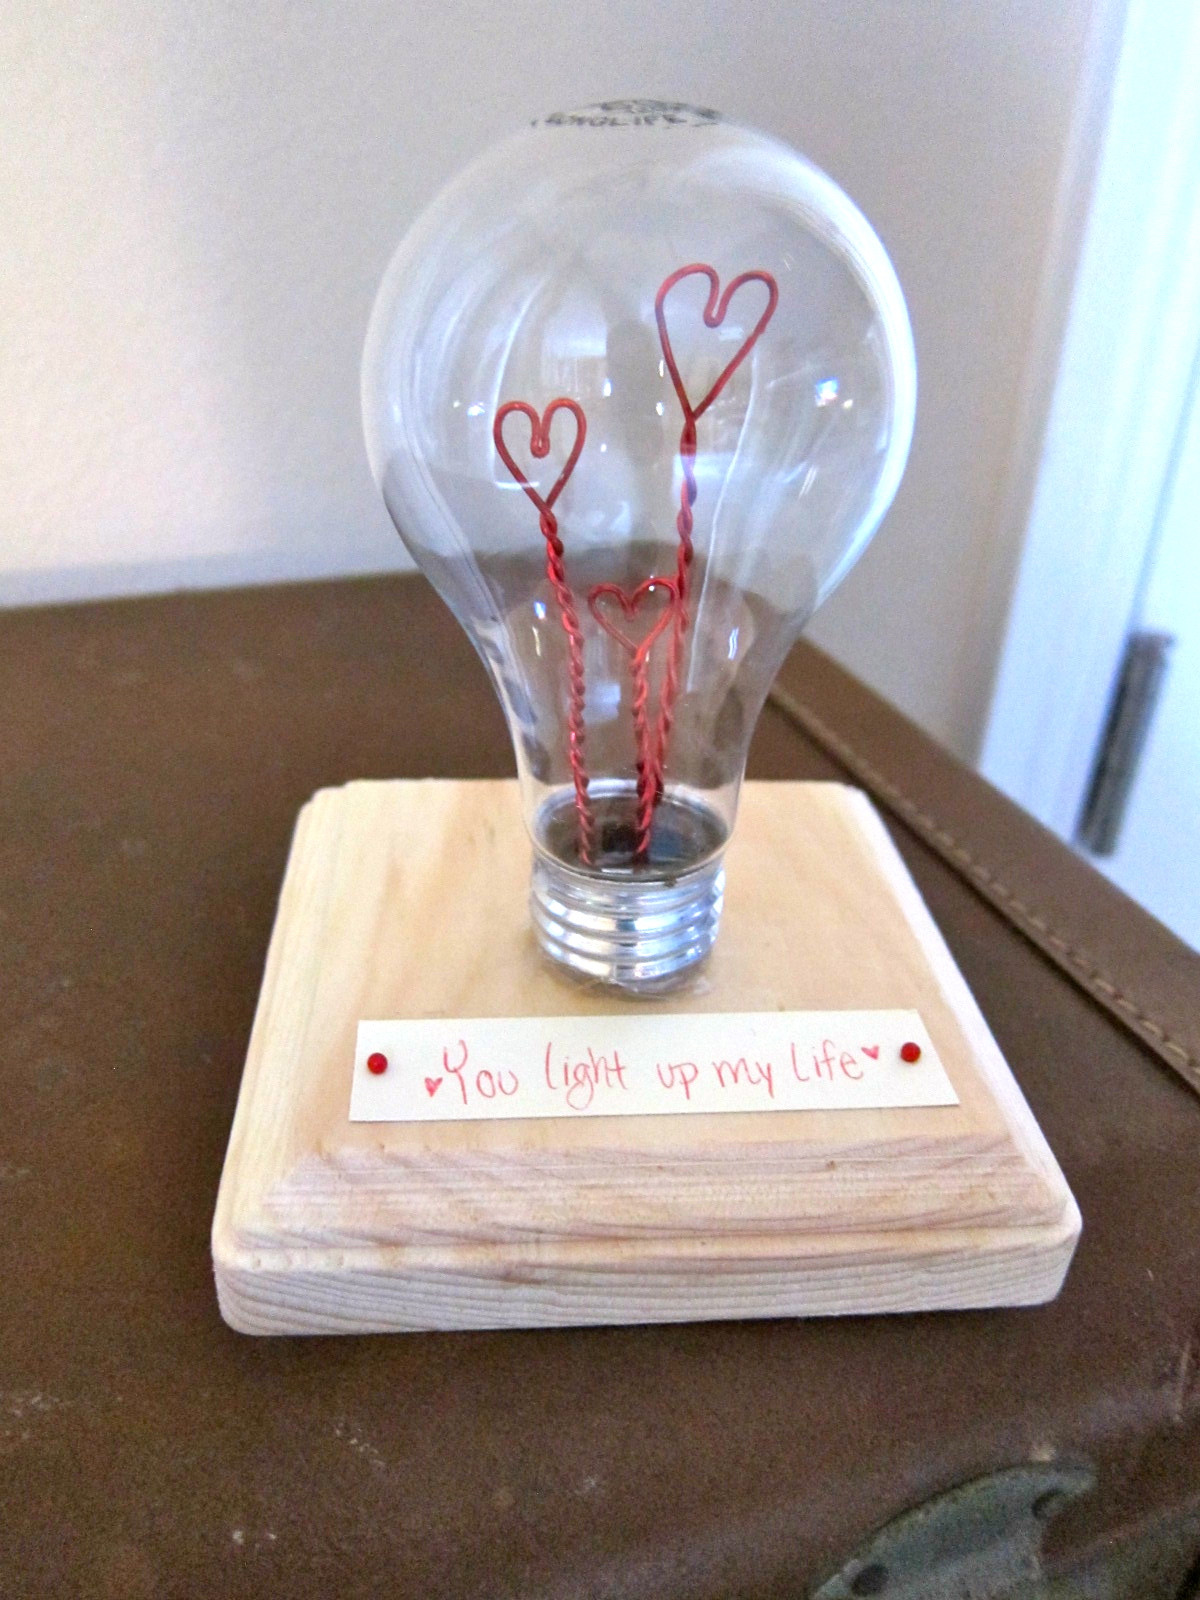 Valentines Day Gifts For Him DIY  DIY Valentine s Day Gifts For Him Ideas Our Motivations